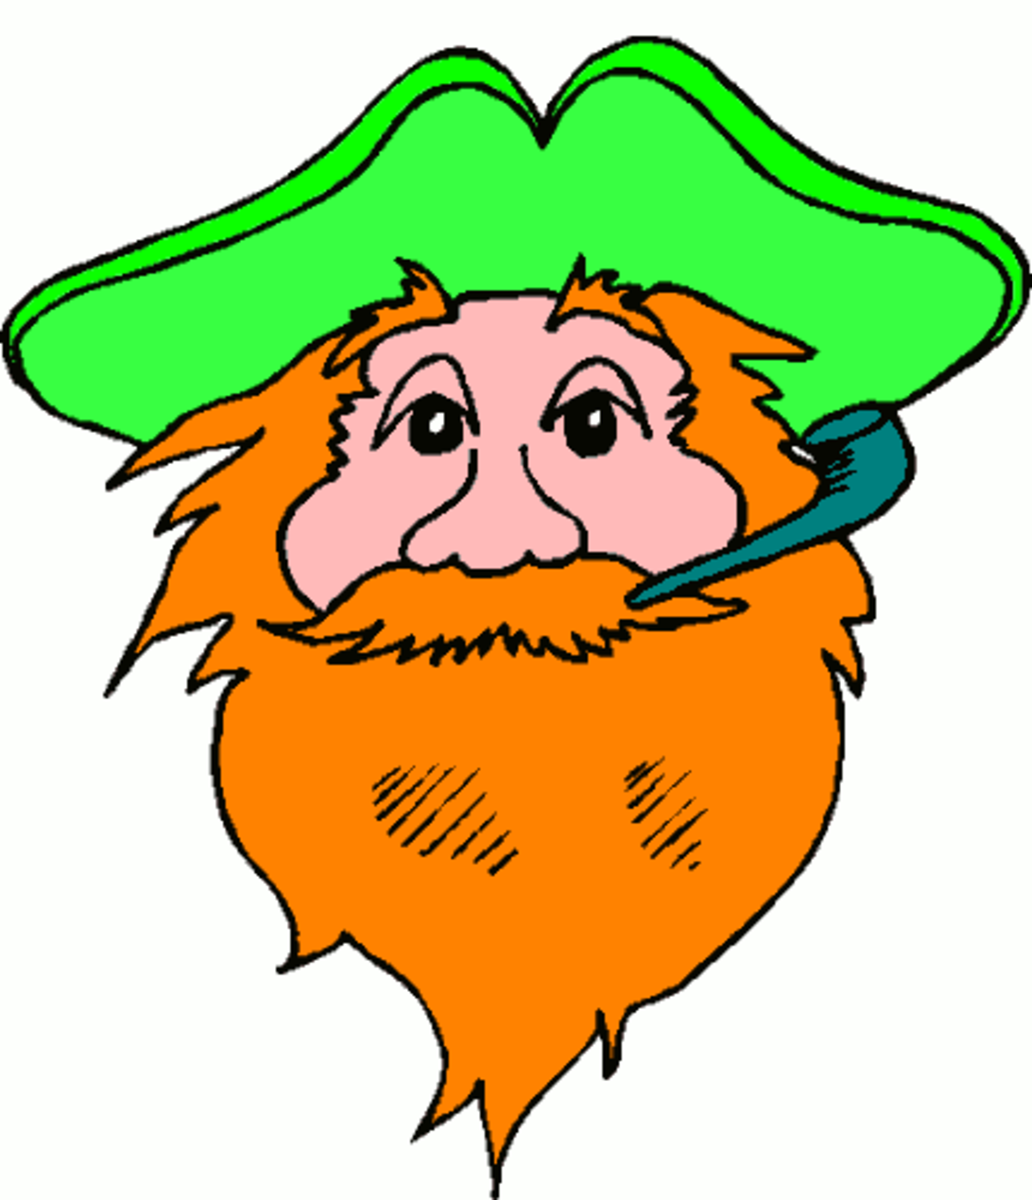 Red-Bearded Leprechaun Smoking a Pipe